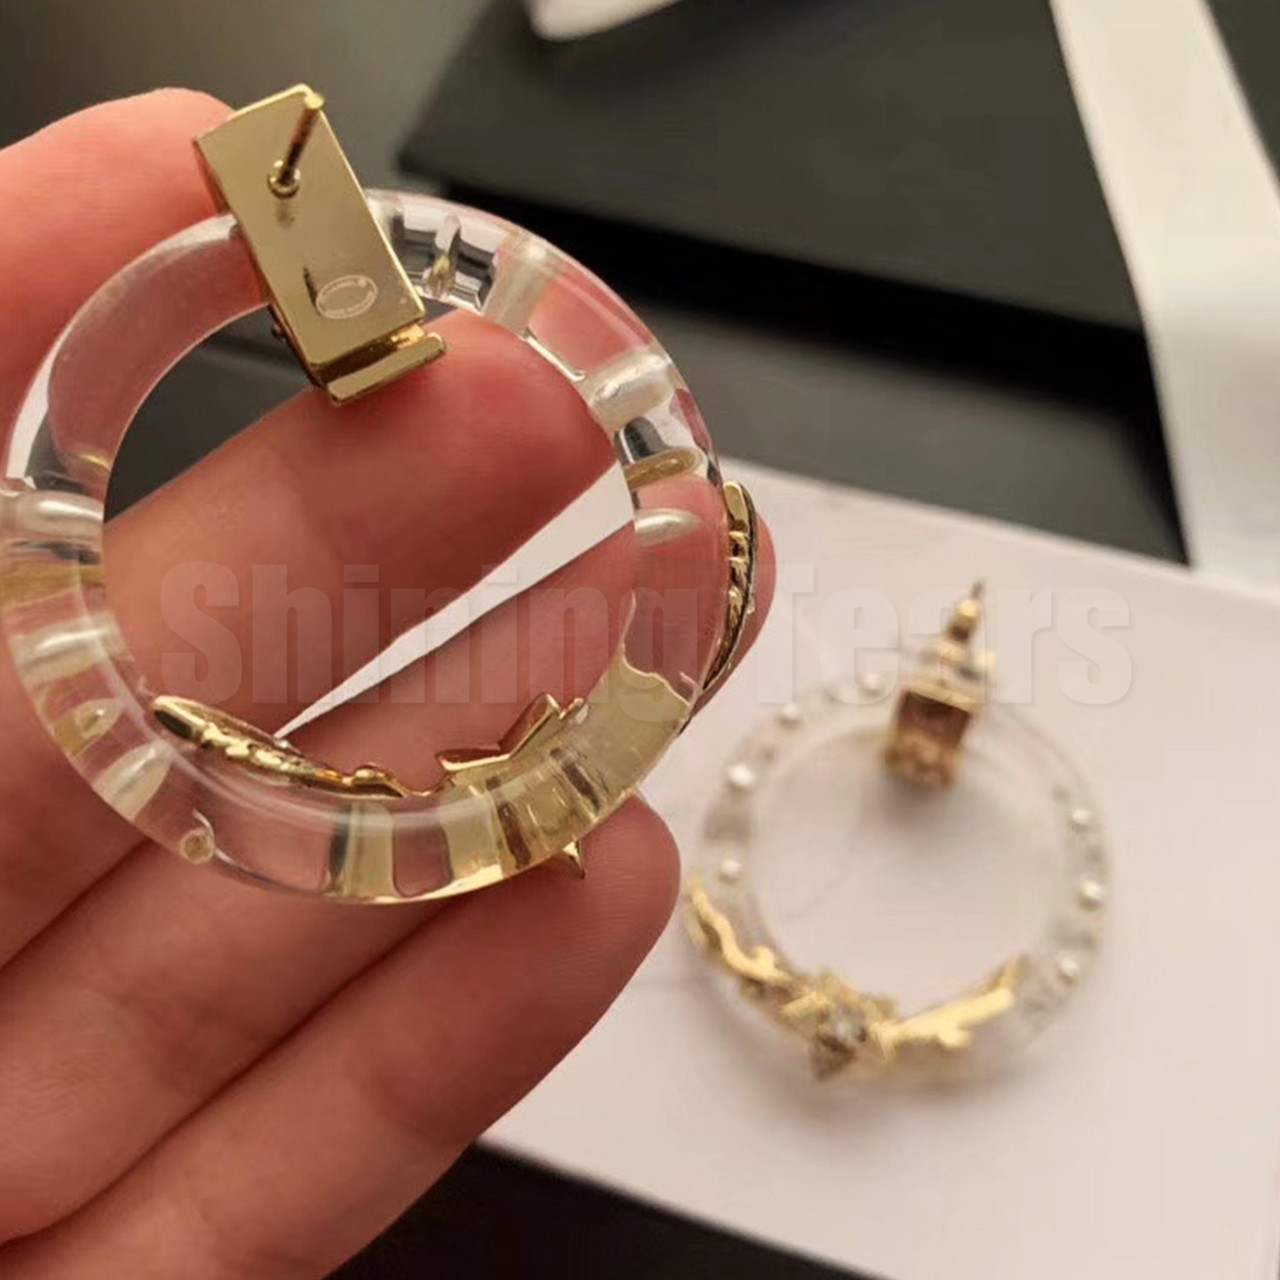 2020 Transparent Gold Stars Hoop Earring Fashion Jewelry Simple New Style Accessories For Valentine/'s Day Gift Women Pretty Gift